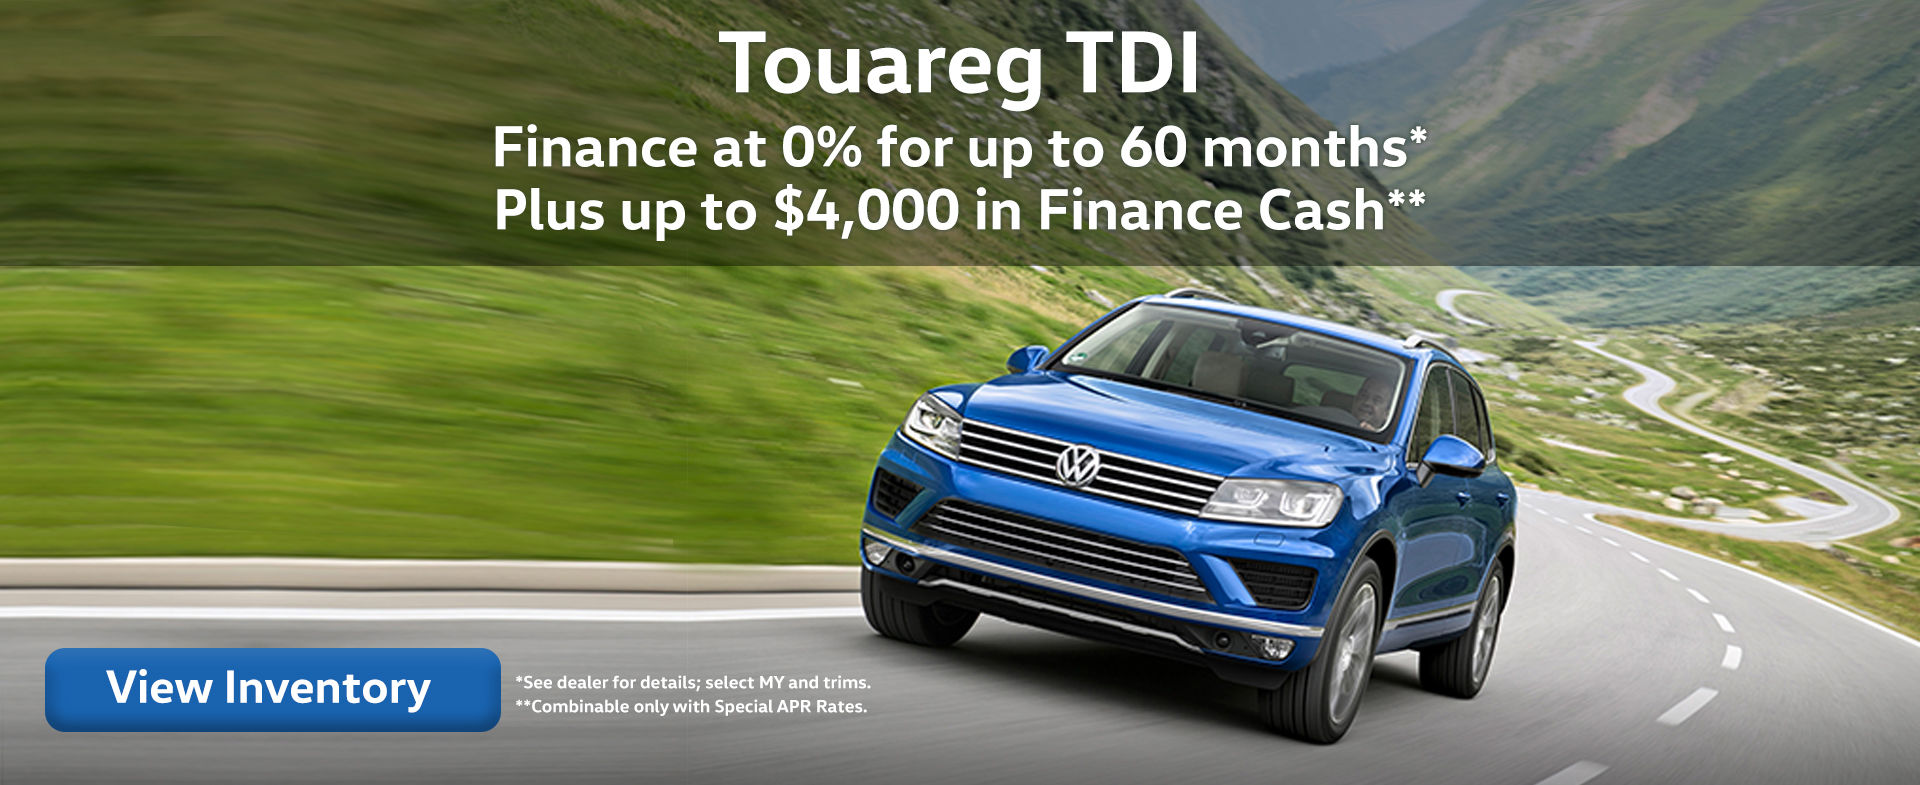 Last Chance Finance Rates on 2015/16 VW Touareg Models!